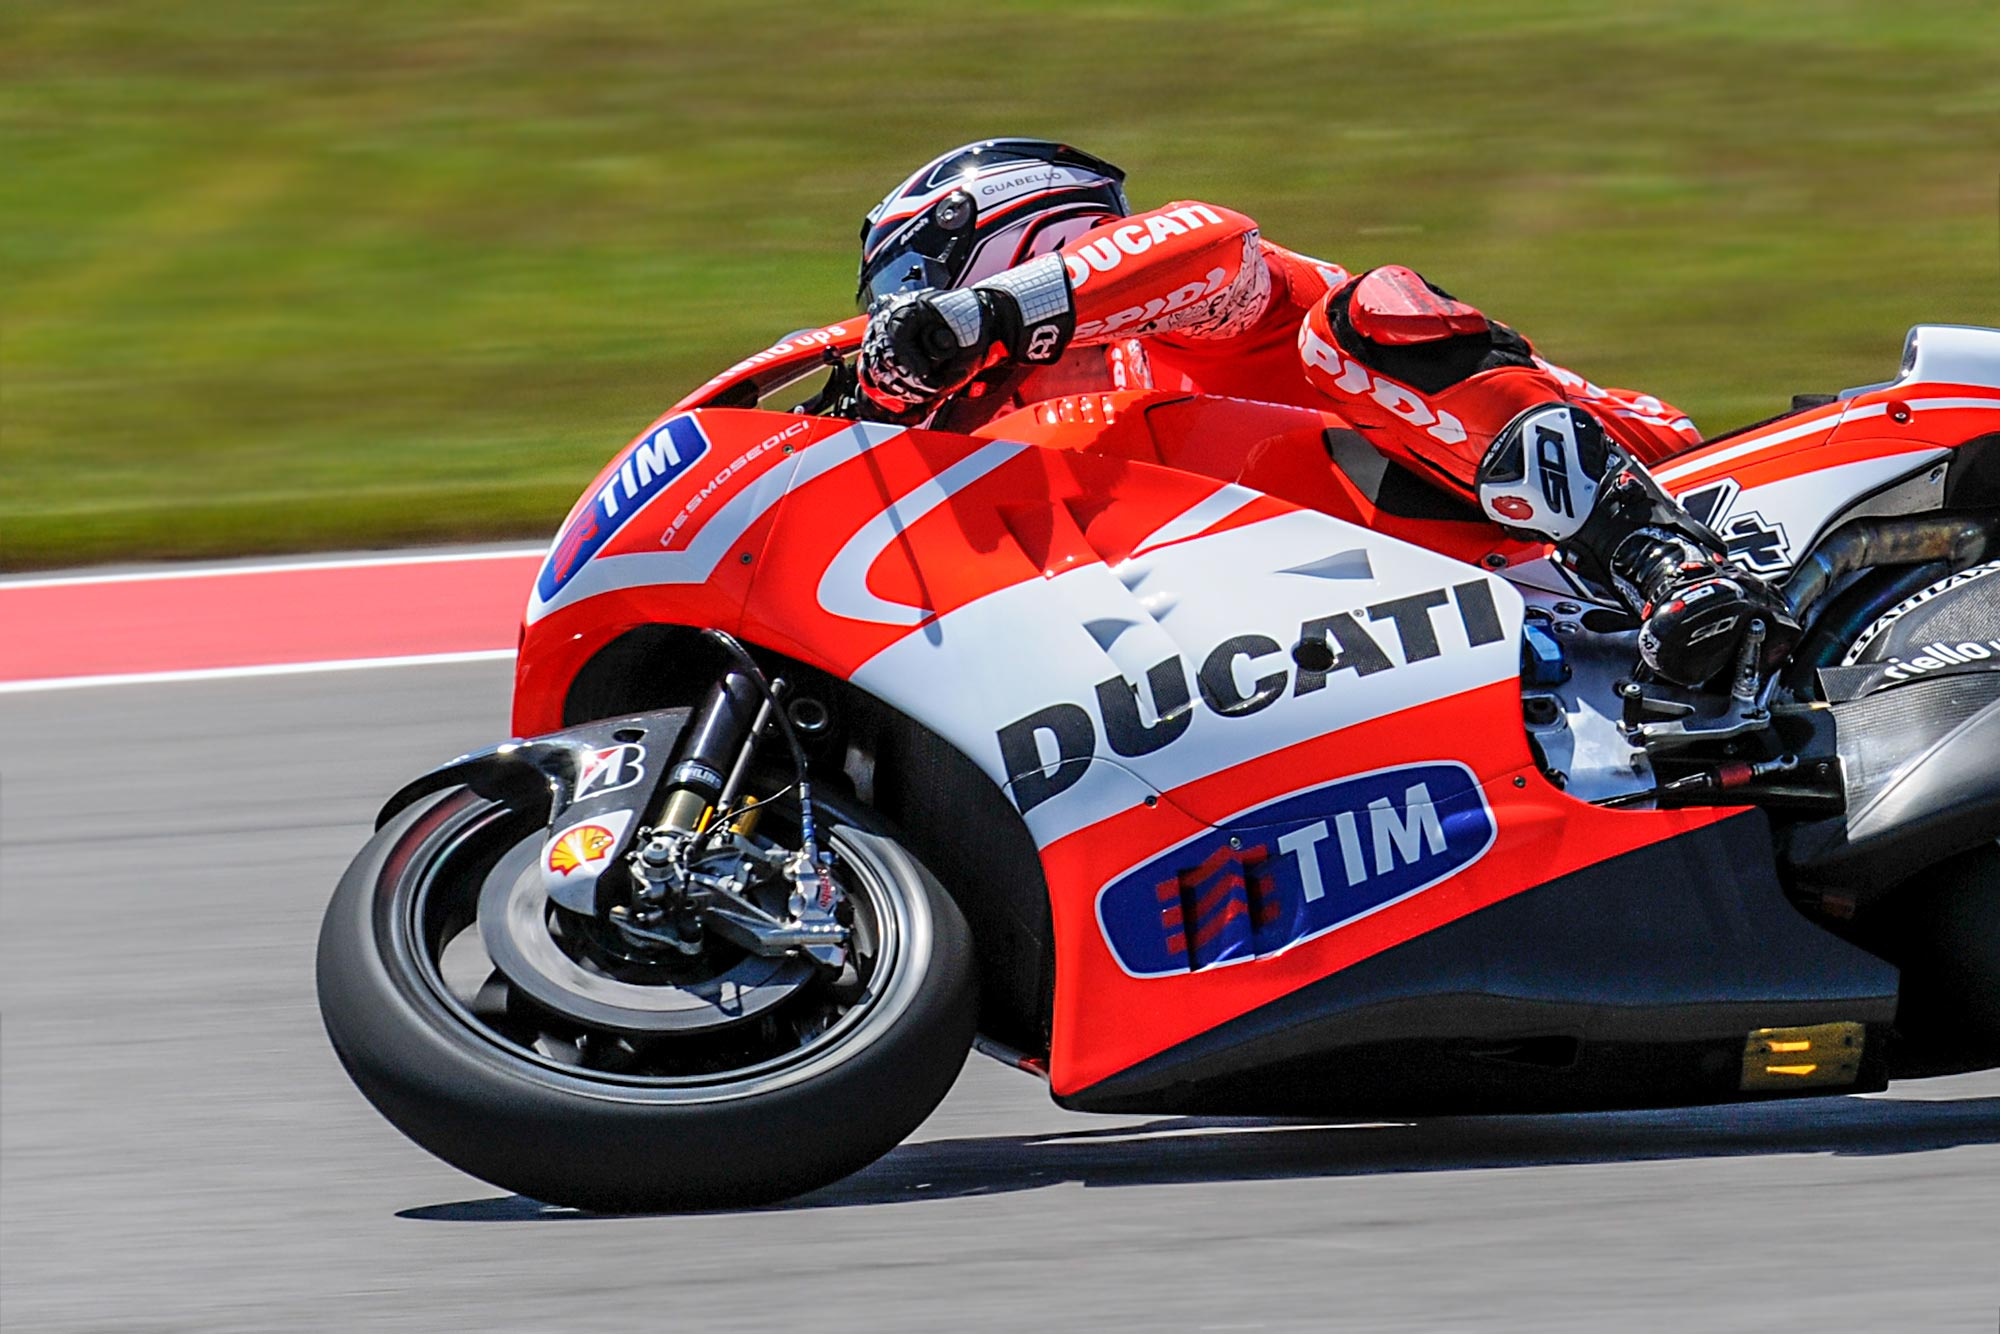 how did ducati become 2nd most